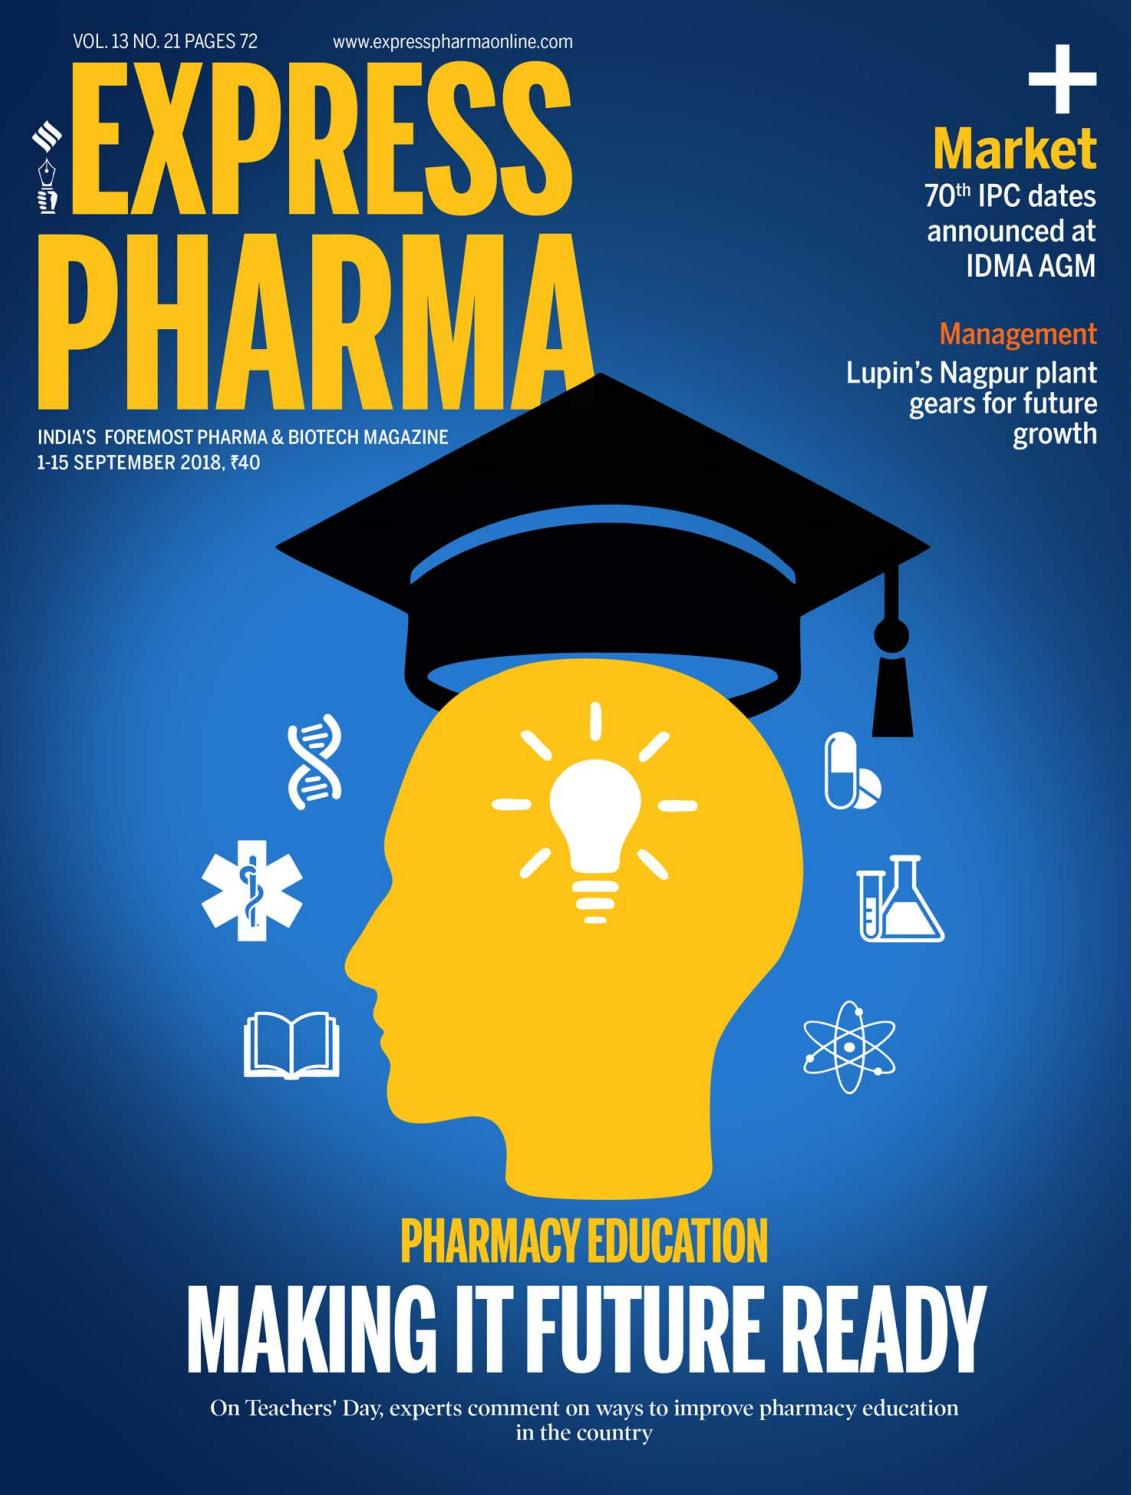 Express Pharma (Vol 13, No 21) September 01-15, 2018 by